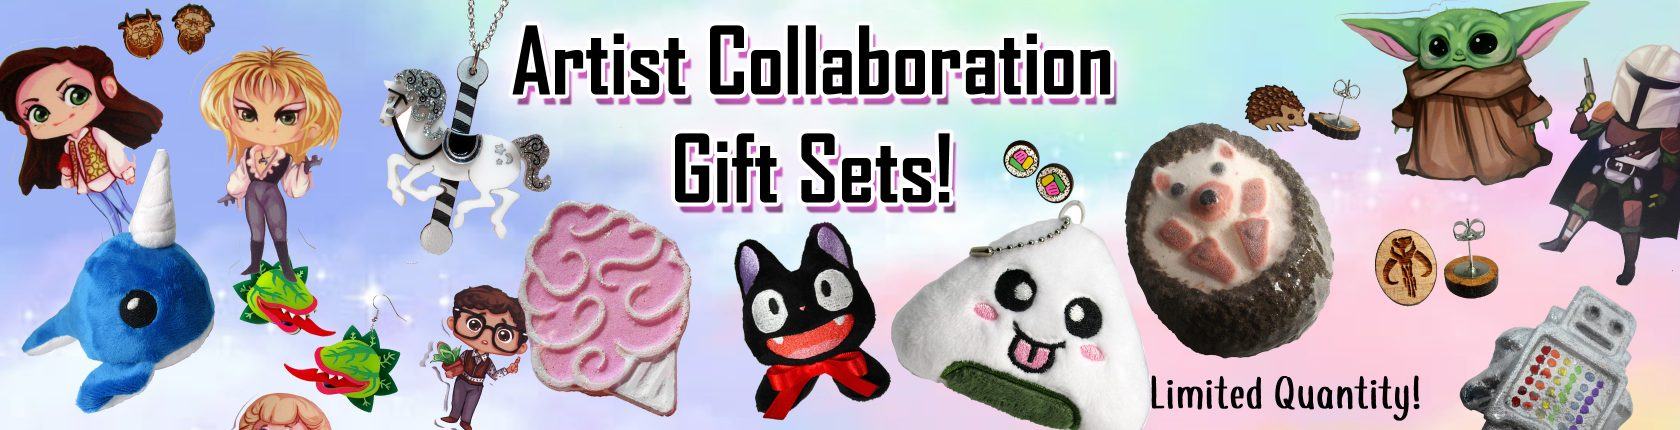 artist collab gift sets